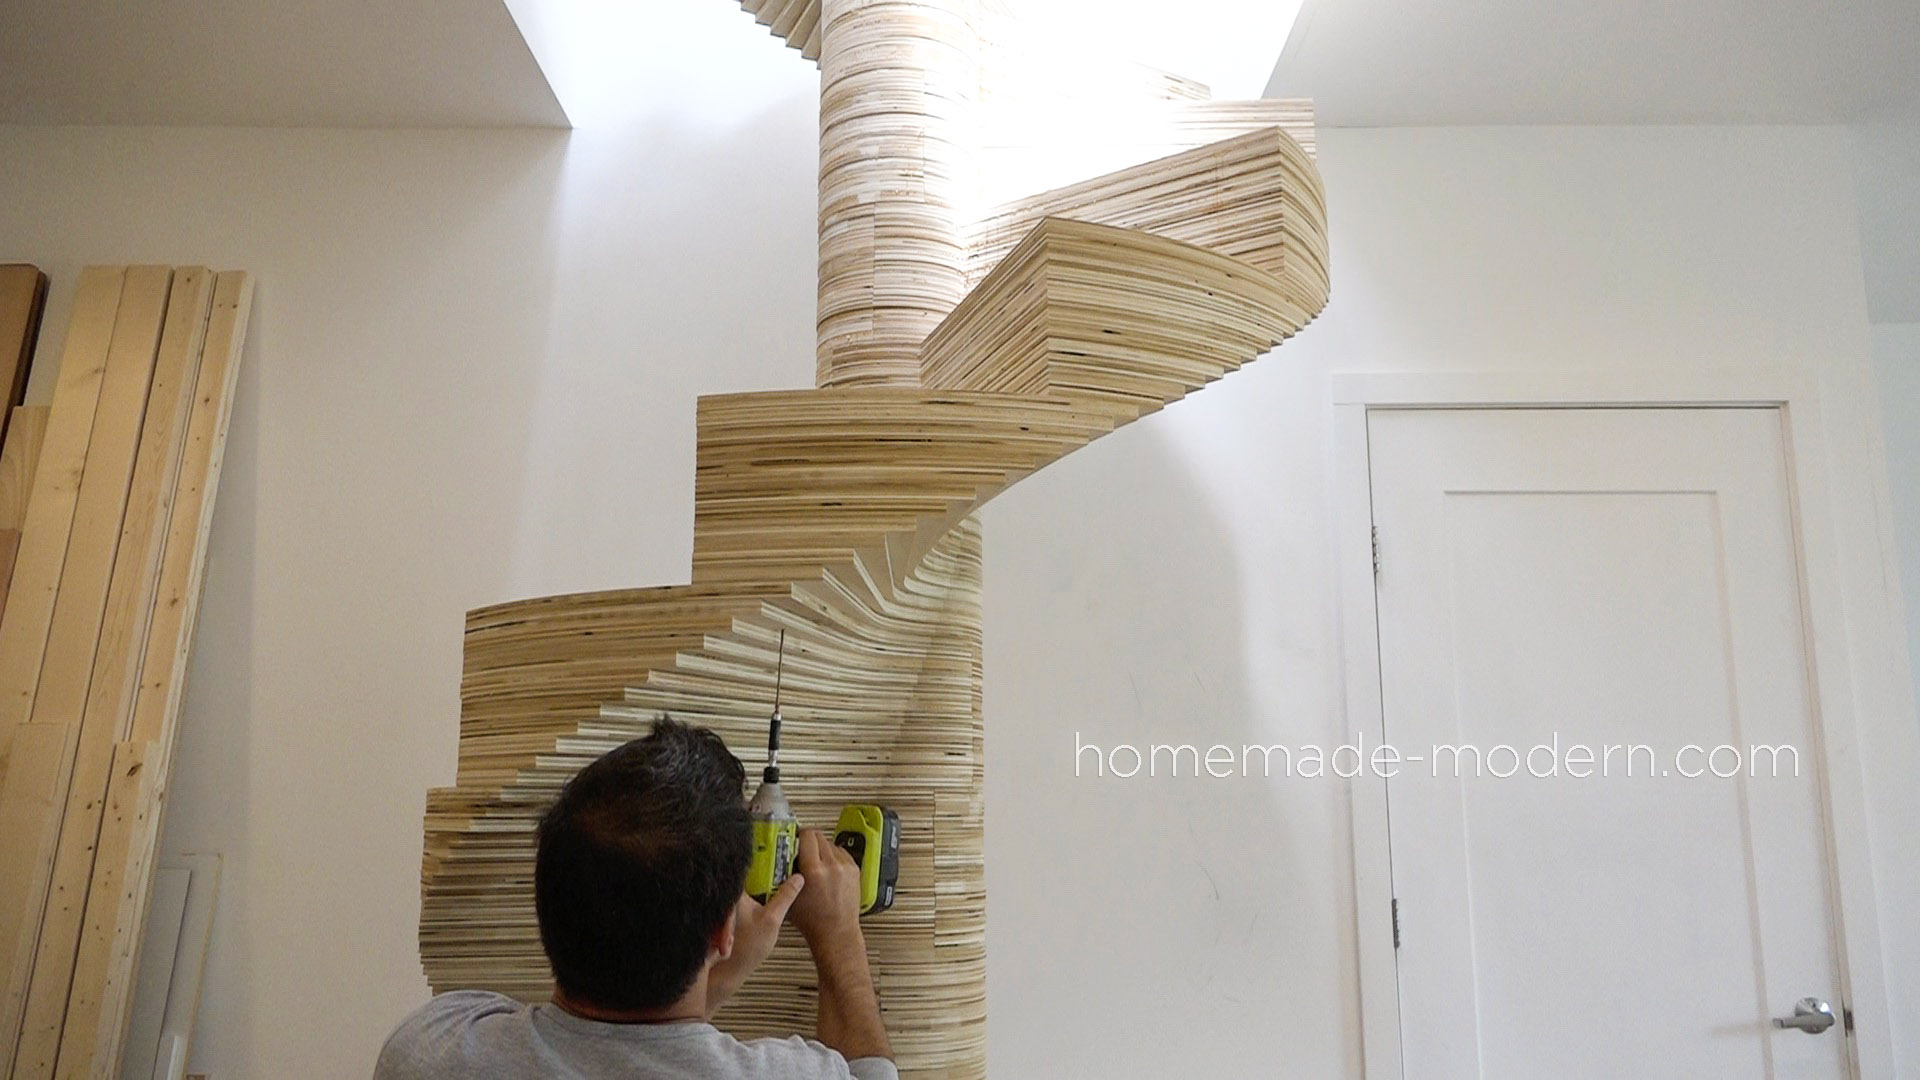 This CNCed Spiral Staircase Was Made Using The X Carve By Inventables.com  And